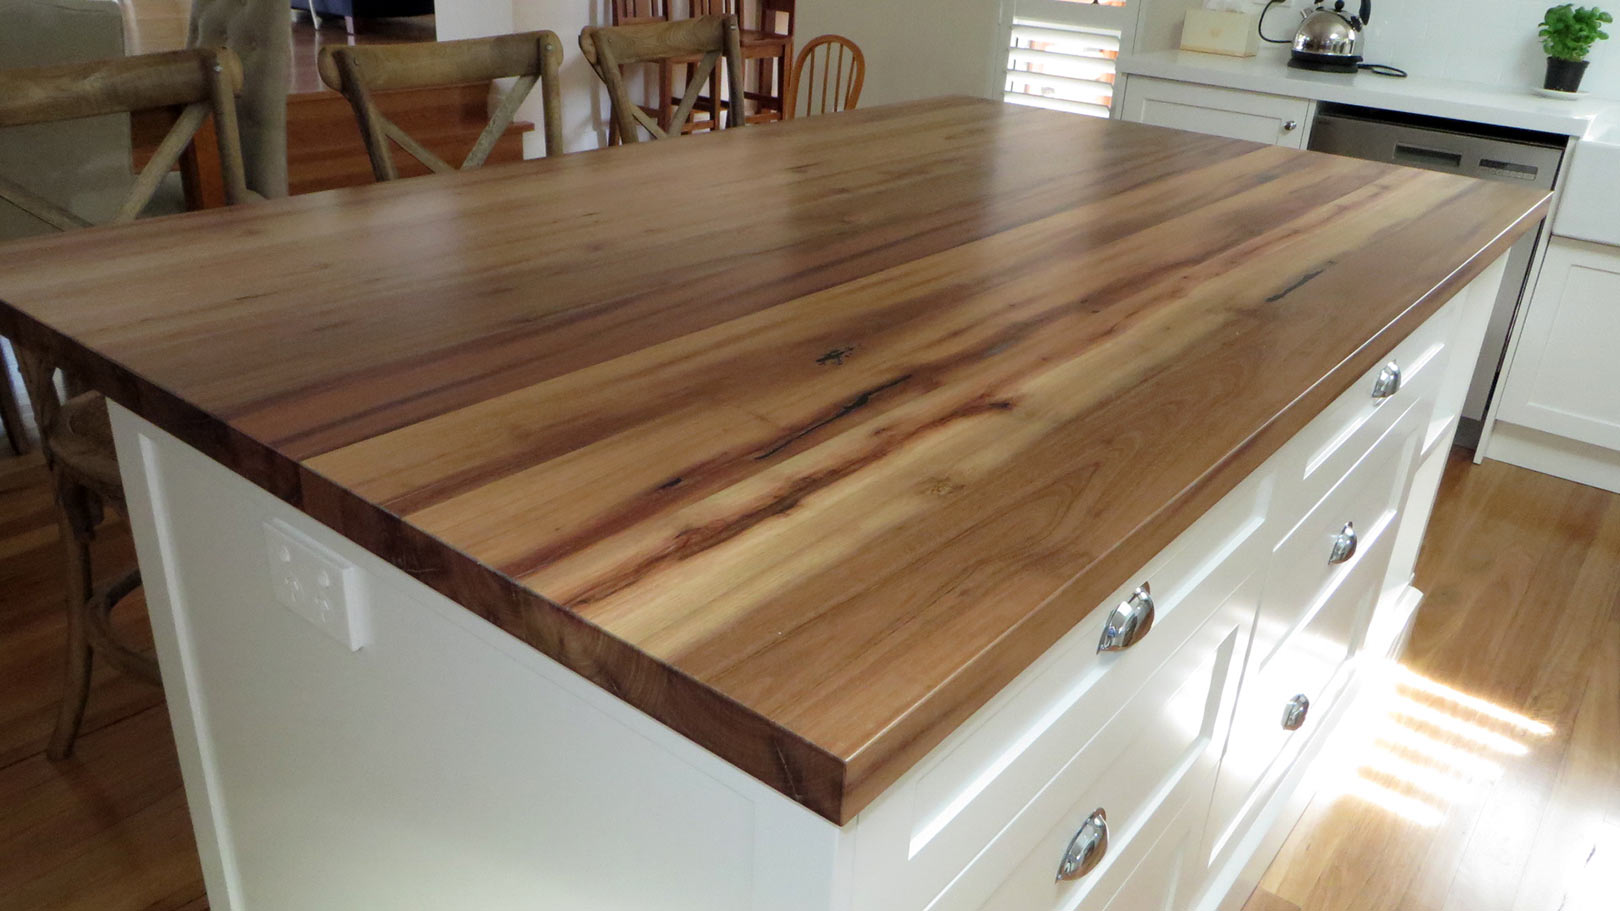 Wooden Benchtop Kitchen Recycled Timber Pty Ltd Solid Timber Benchtops